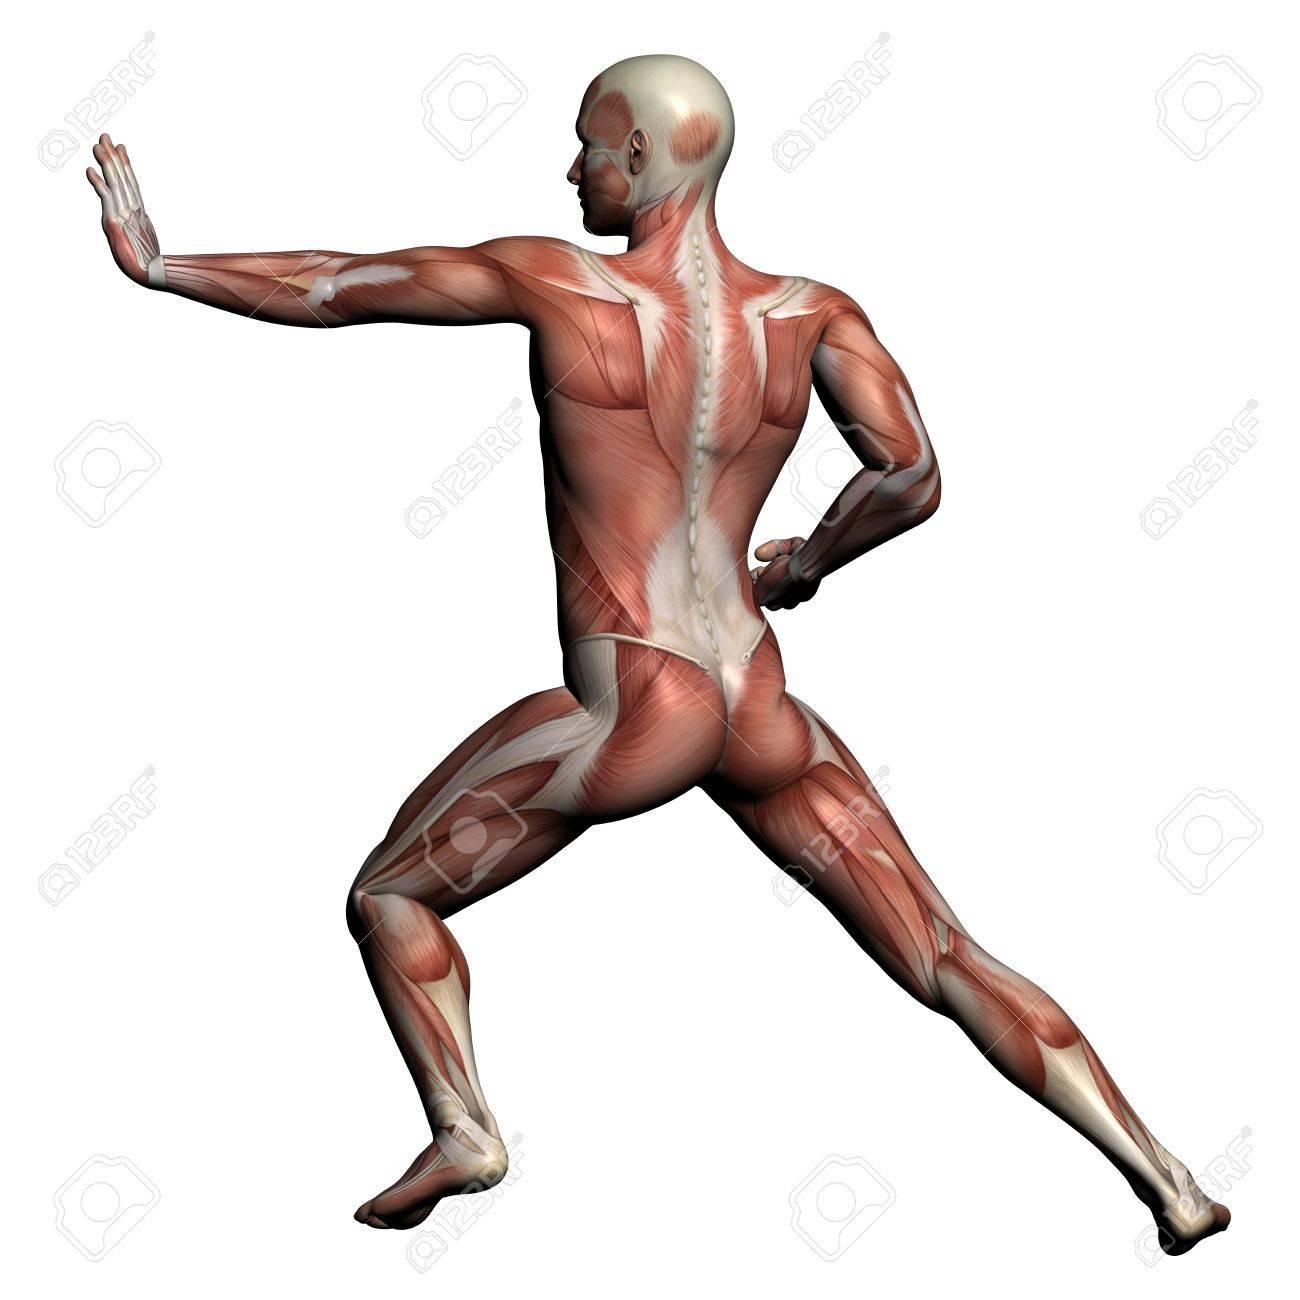 human anatomy - male muscles made in 3d software stock photo, Muscles